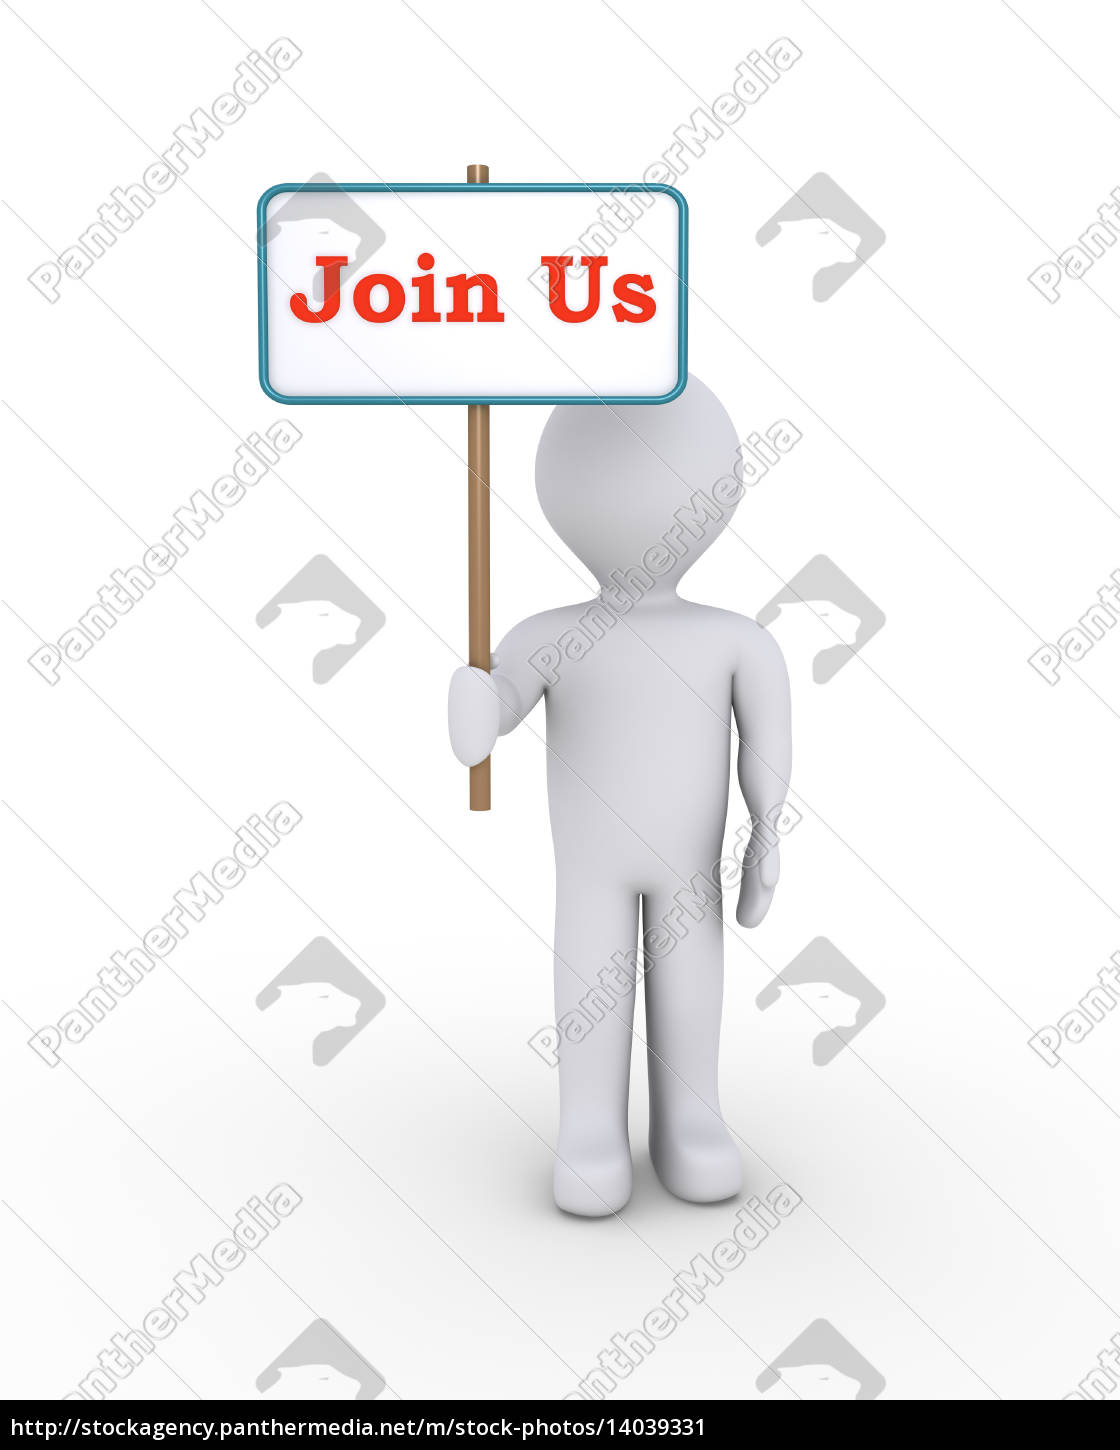 person, with, sign, offering, membership - 14039331